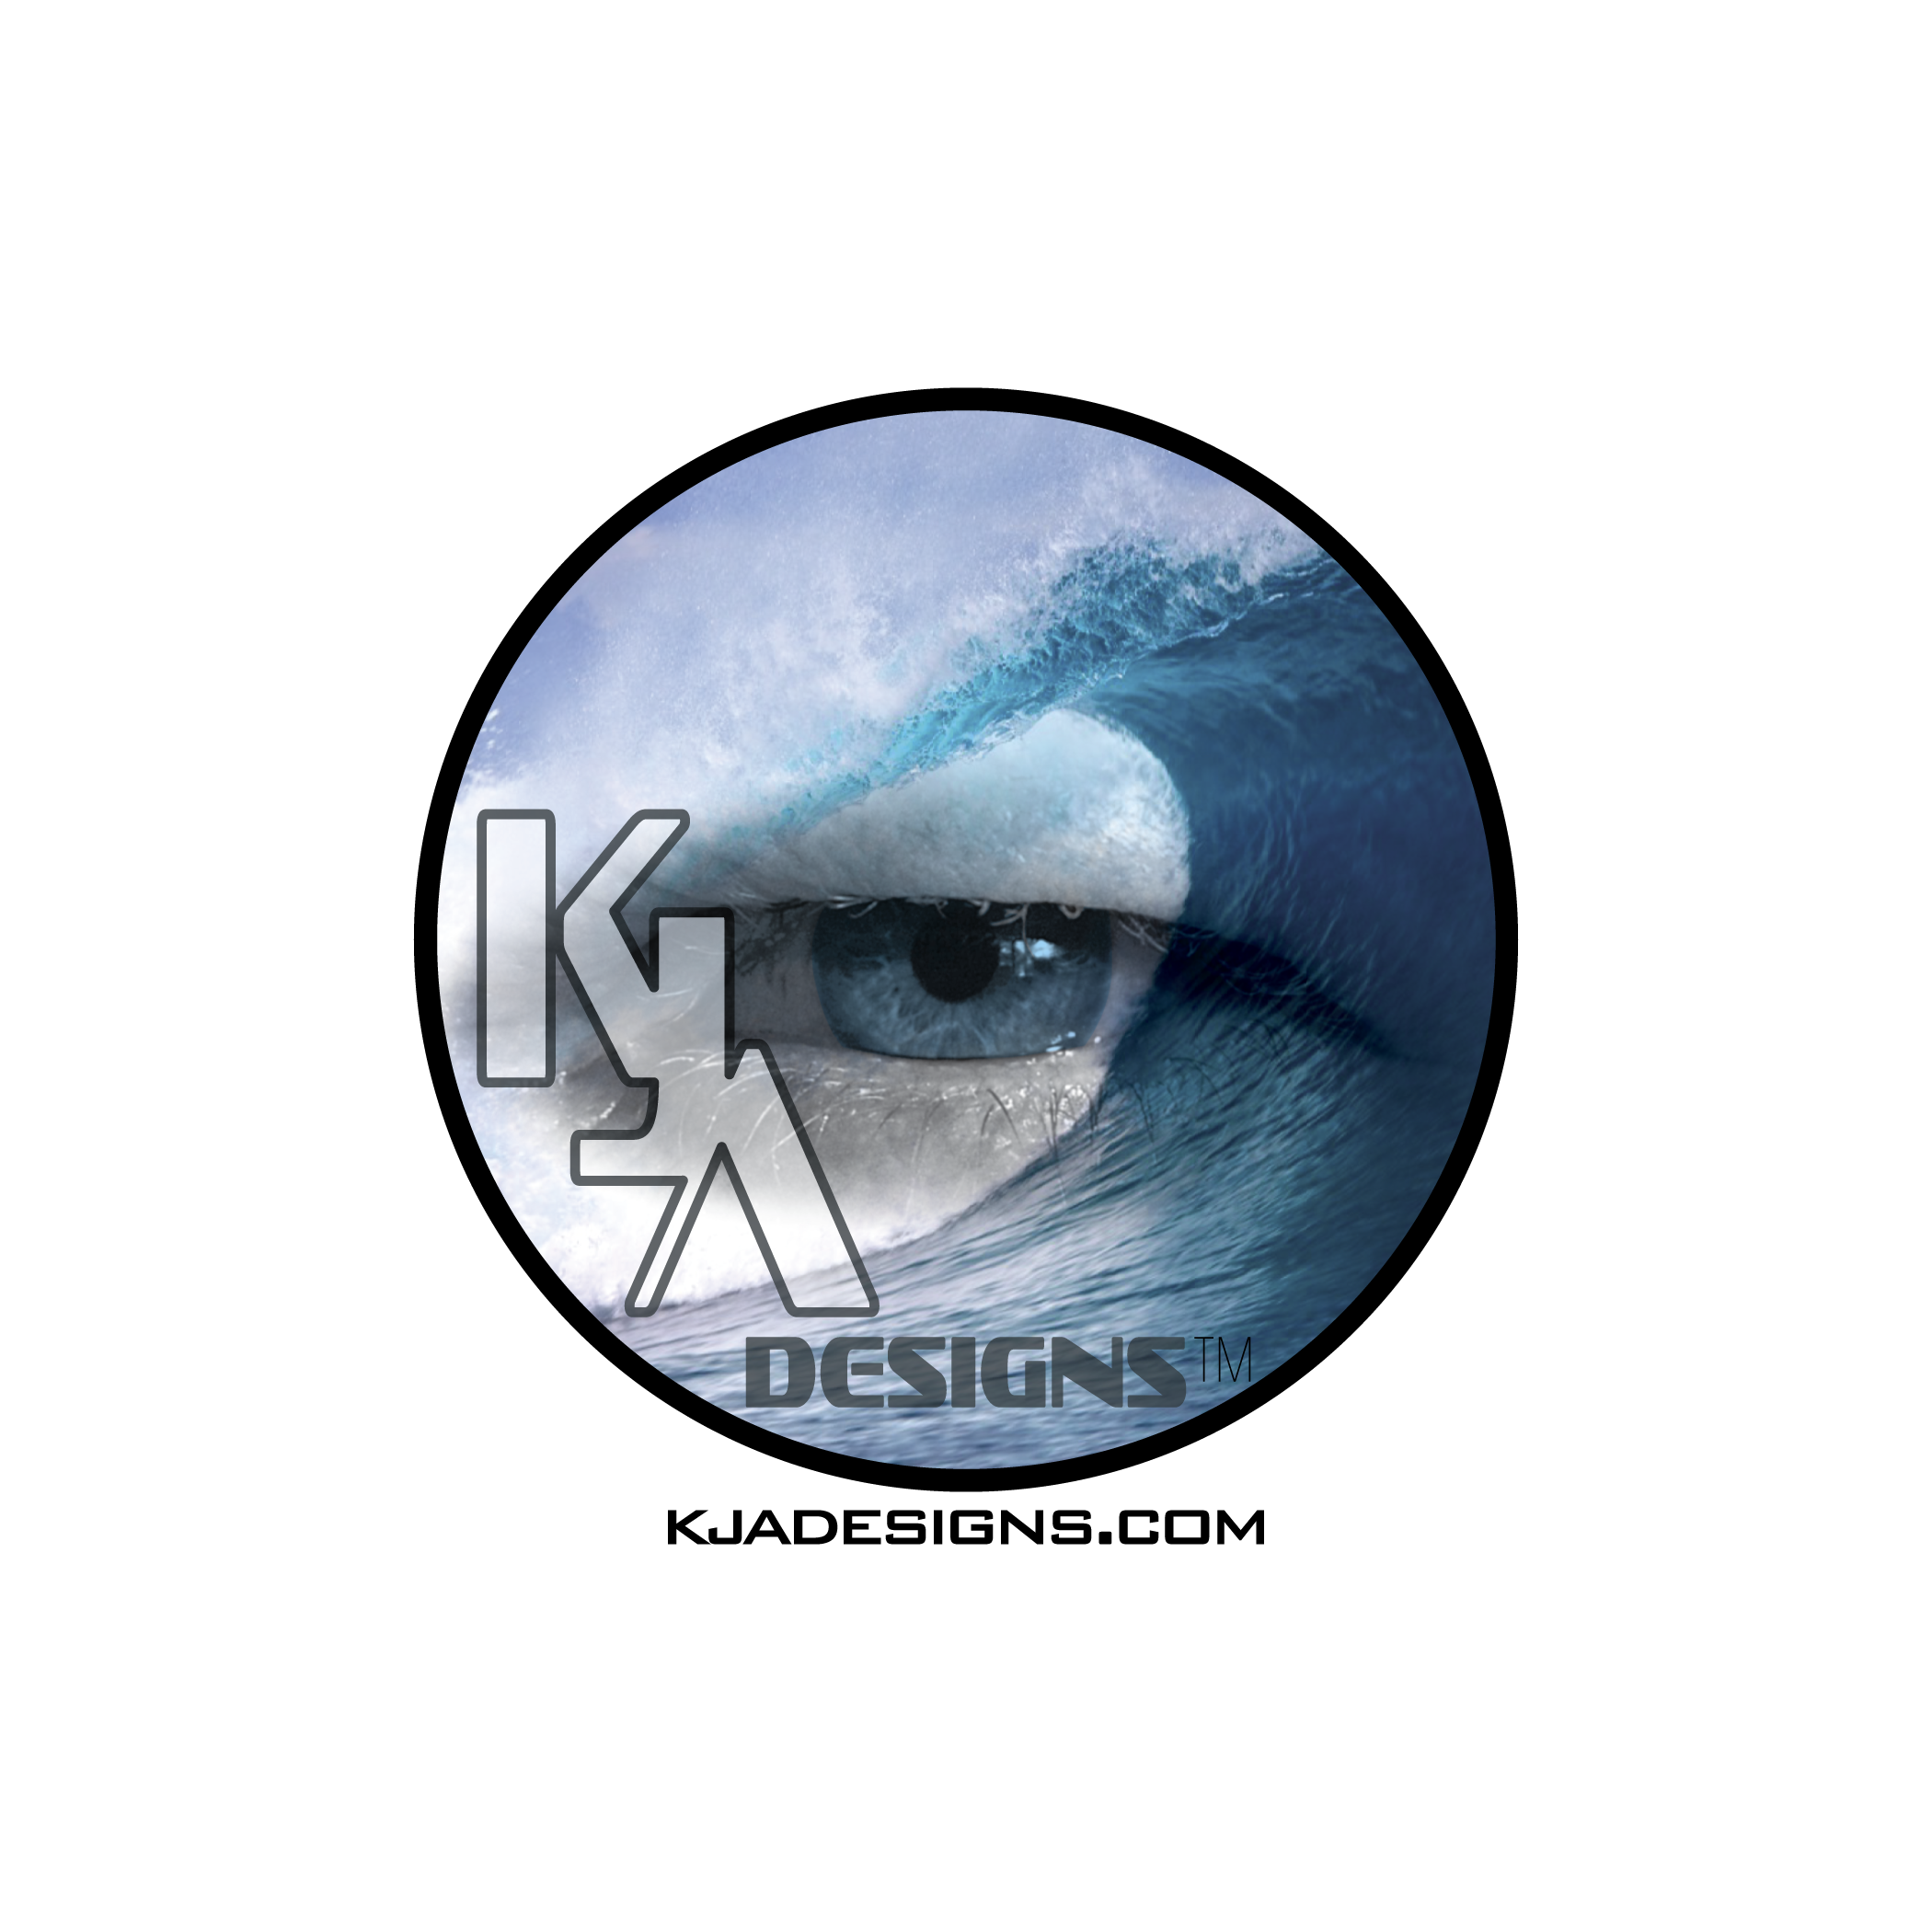 KJA Designs Inc.™ eye 2B